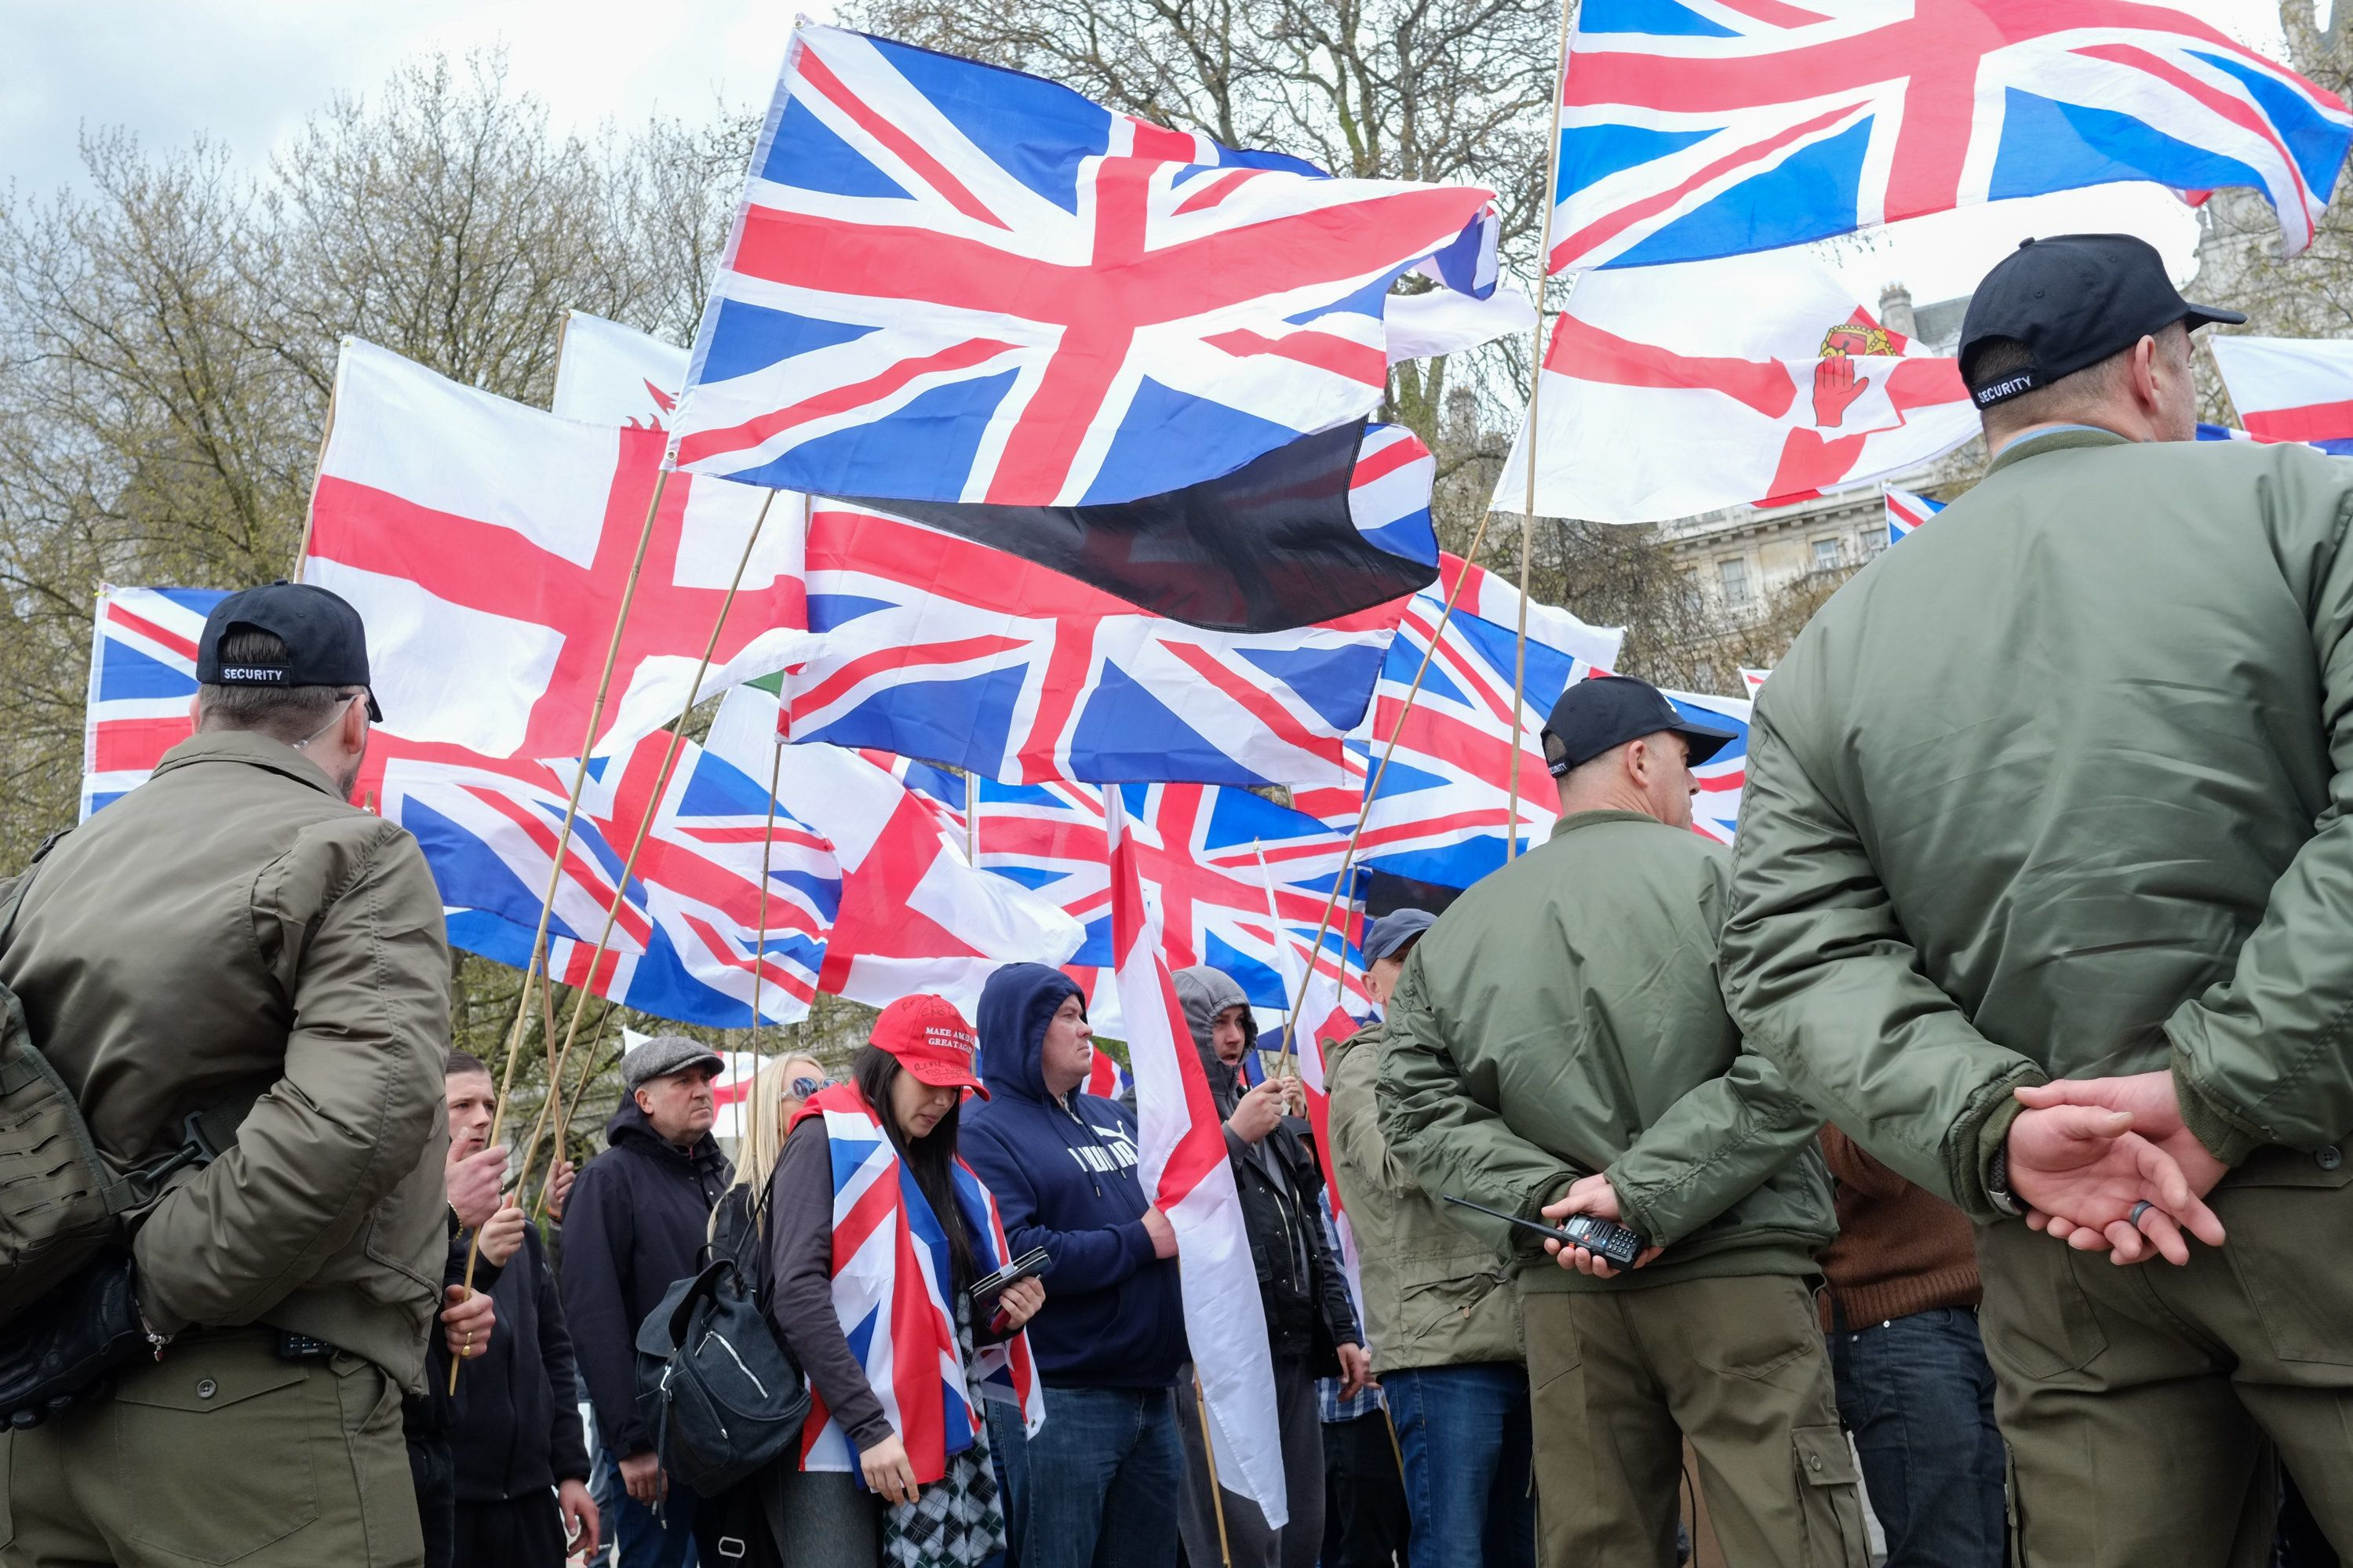 Threat Posed By Far-Right Terror Increasing, New Figures